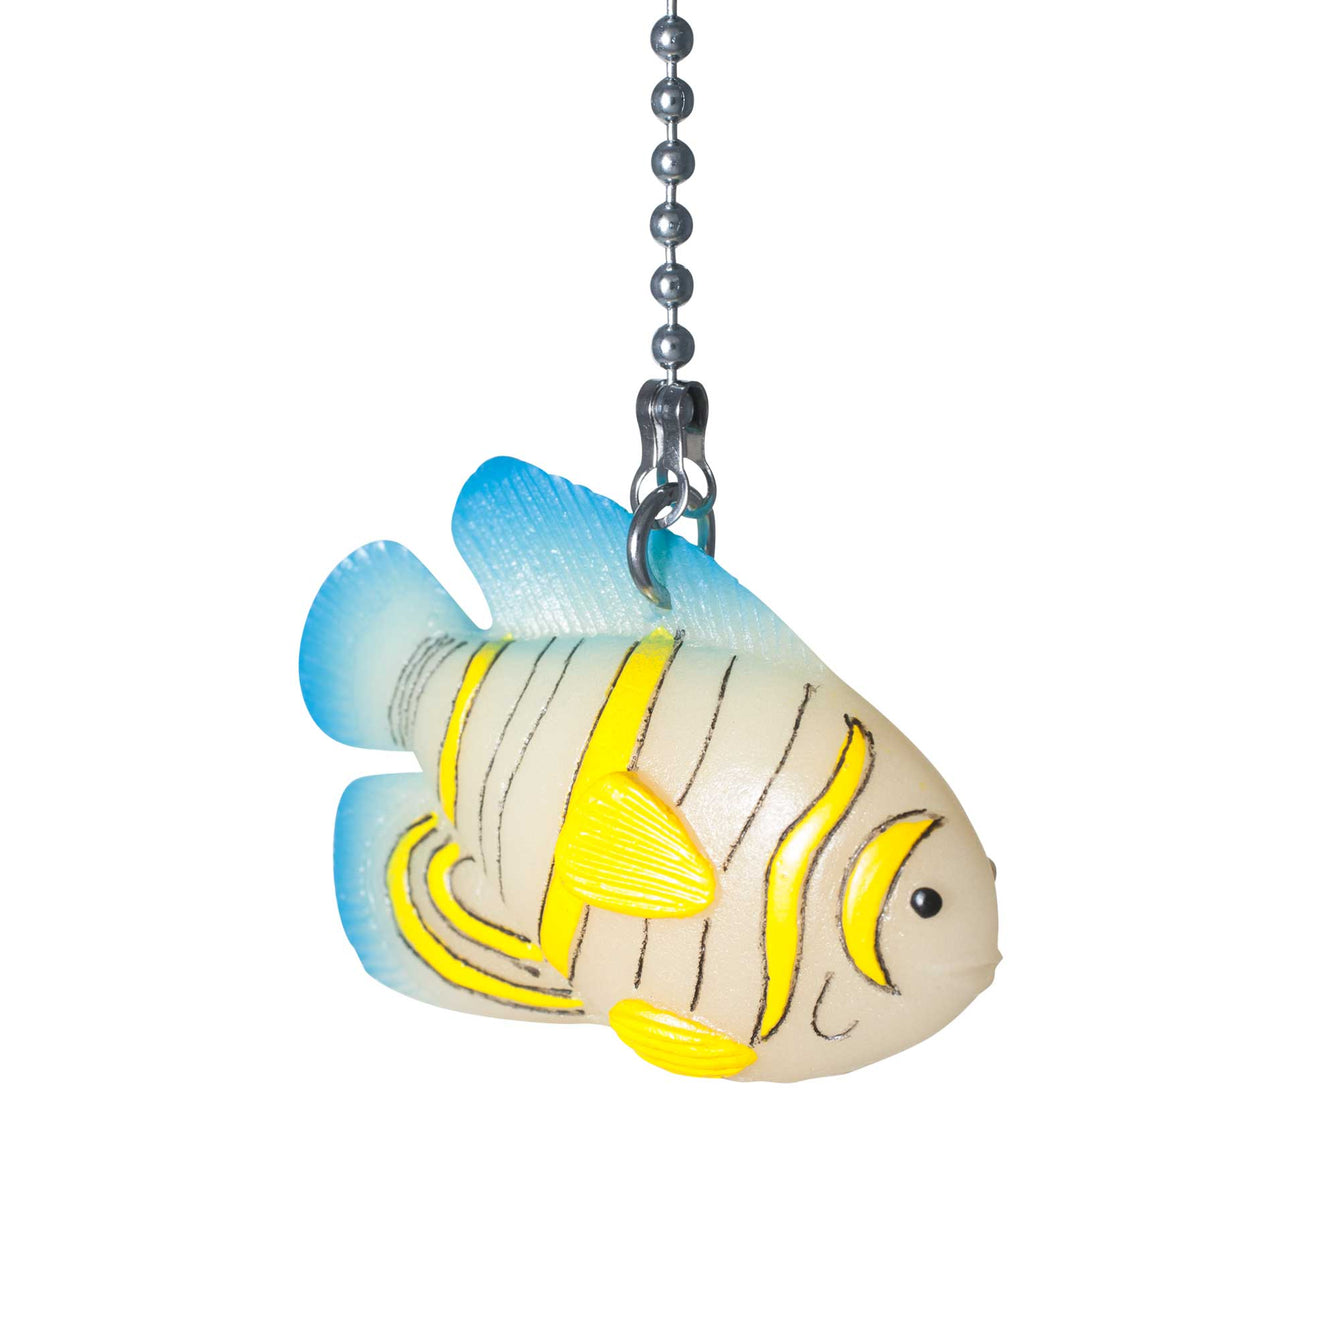 ElekTek Light Pull Chain Tropical Fish Design Glow in the Dark With 80cm Matching Chain - Buy It Better Default Title